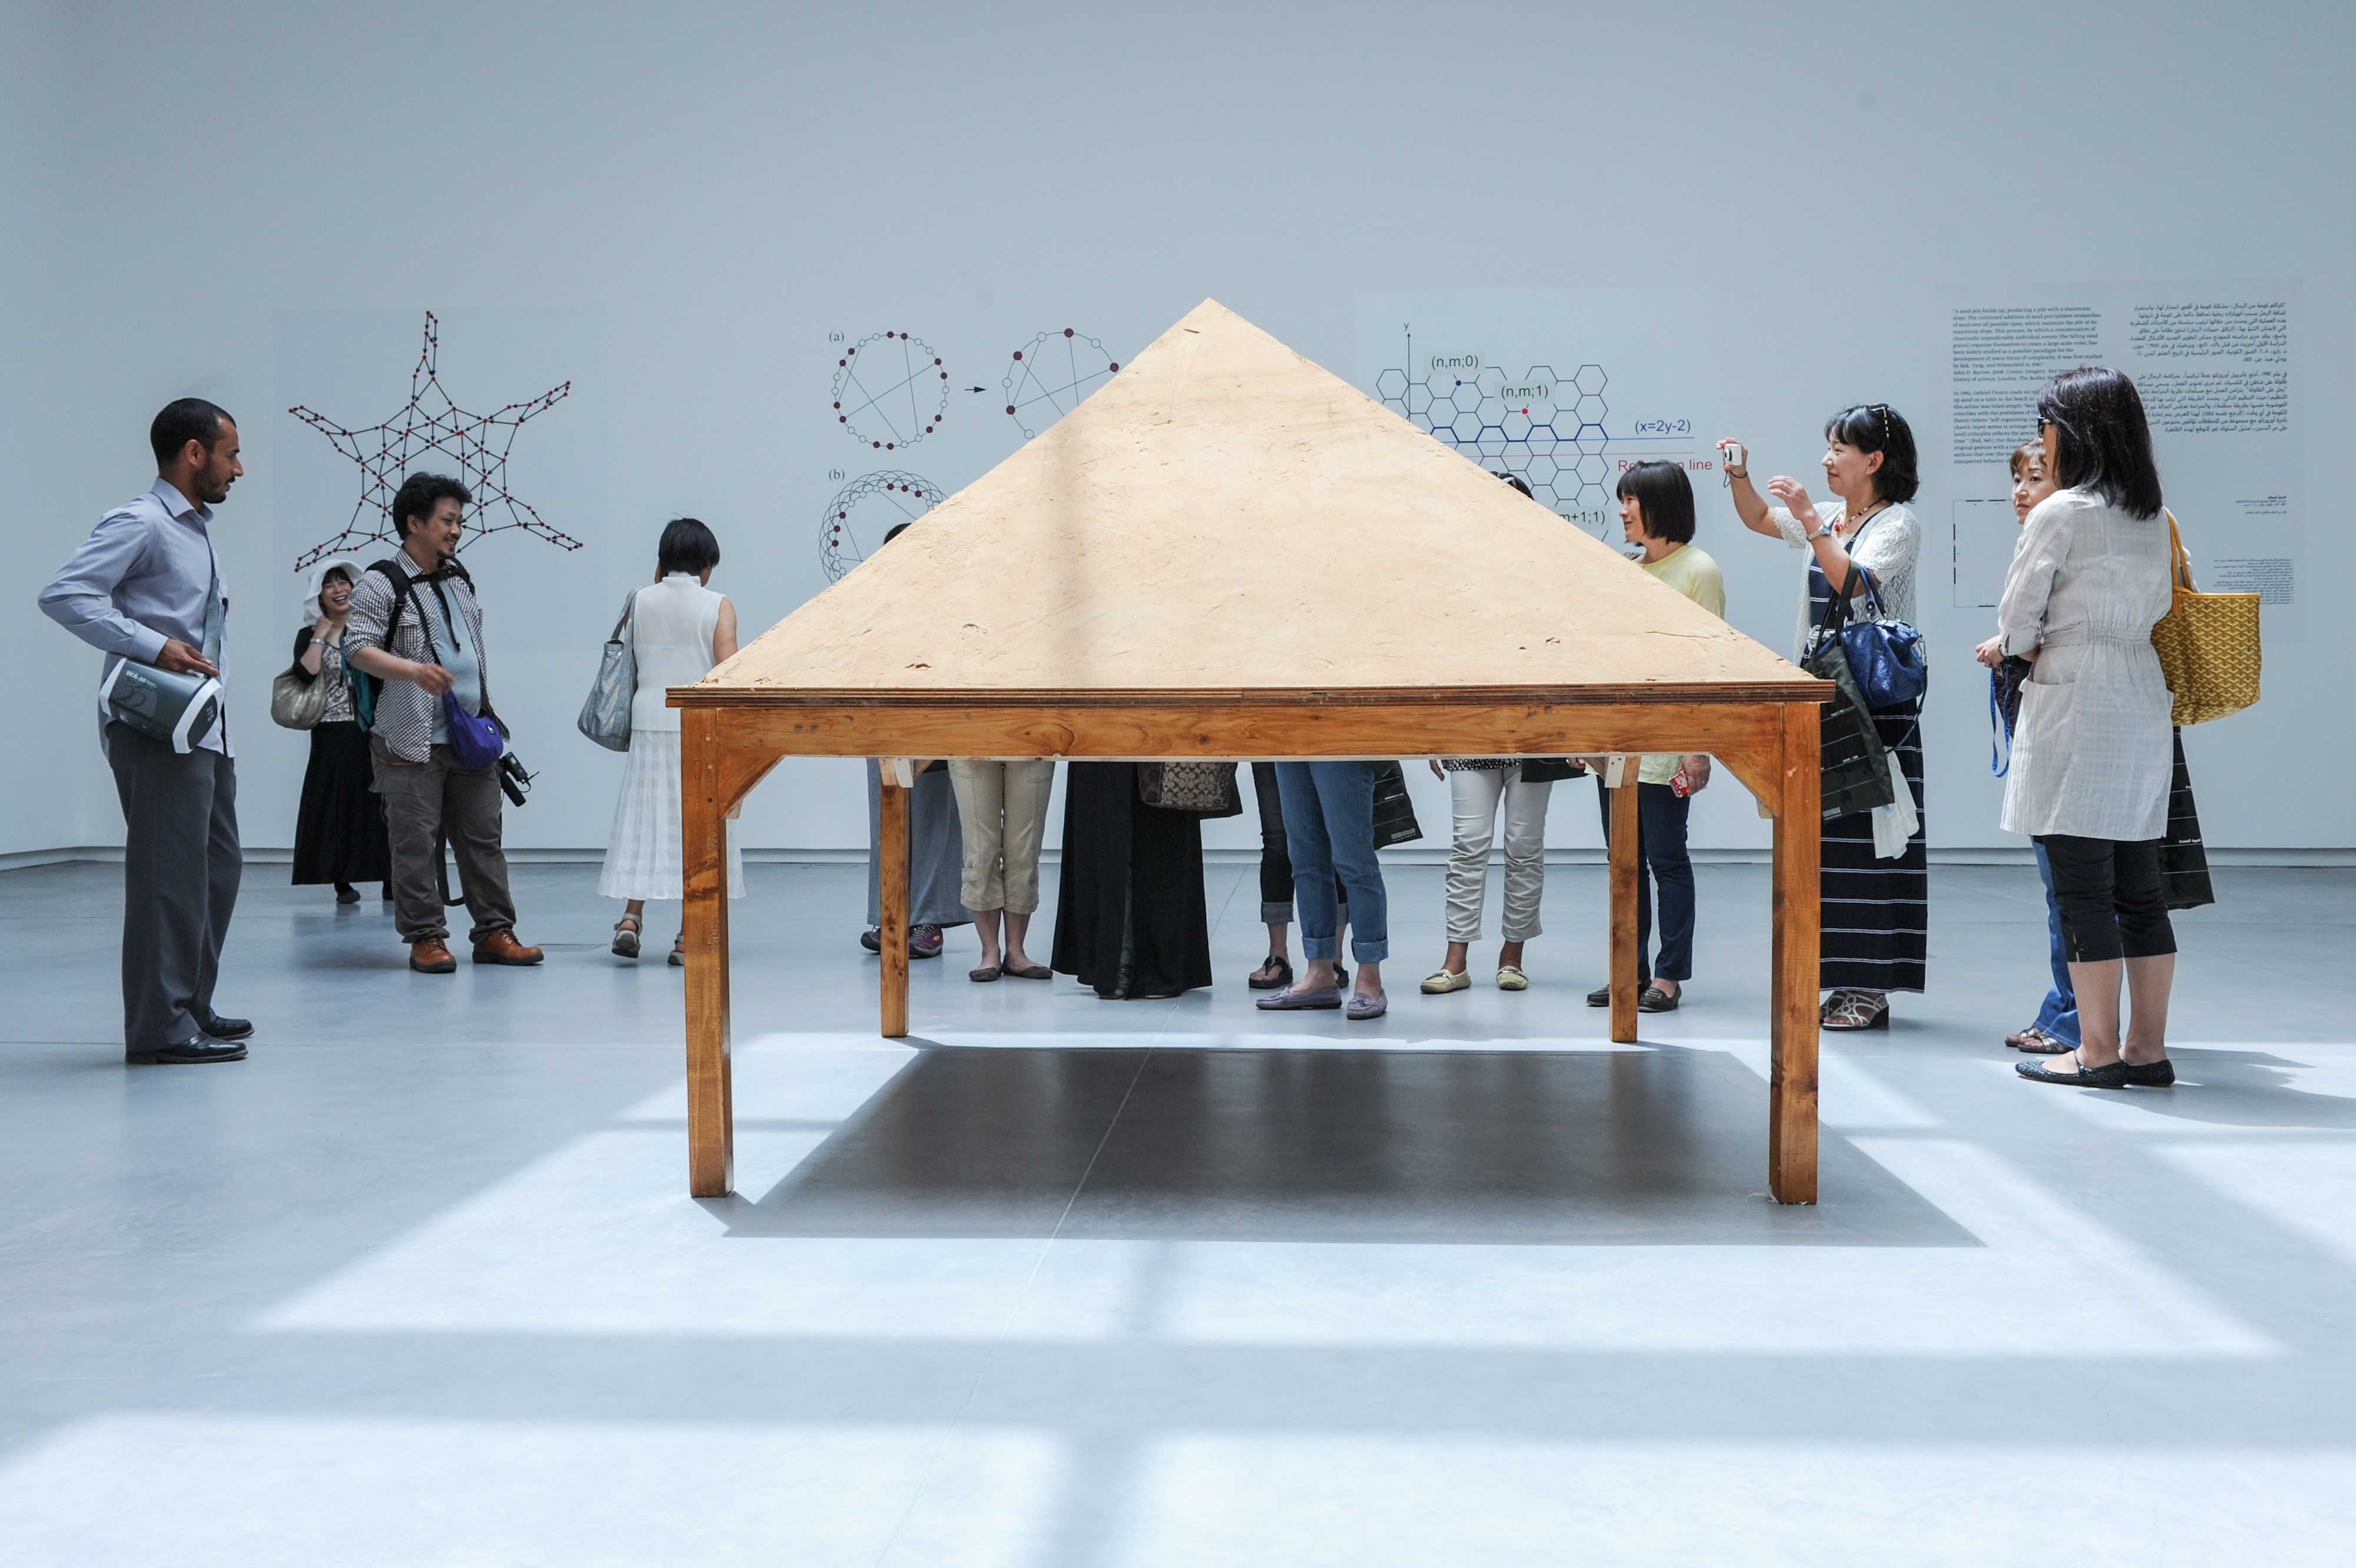 Sand on Table as Model of 'Self-Organising Criticality' Image